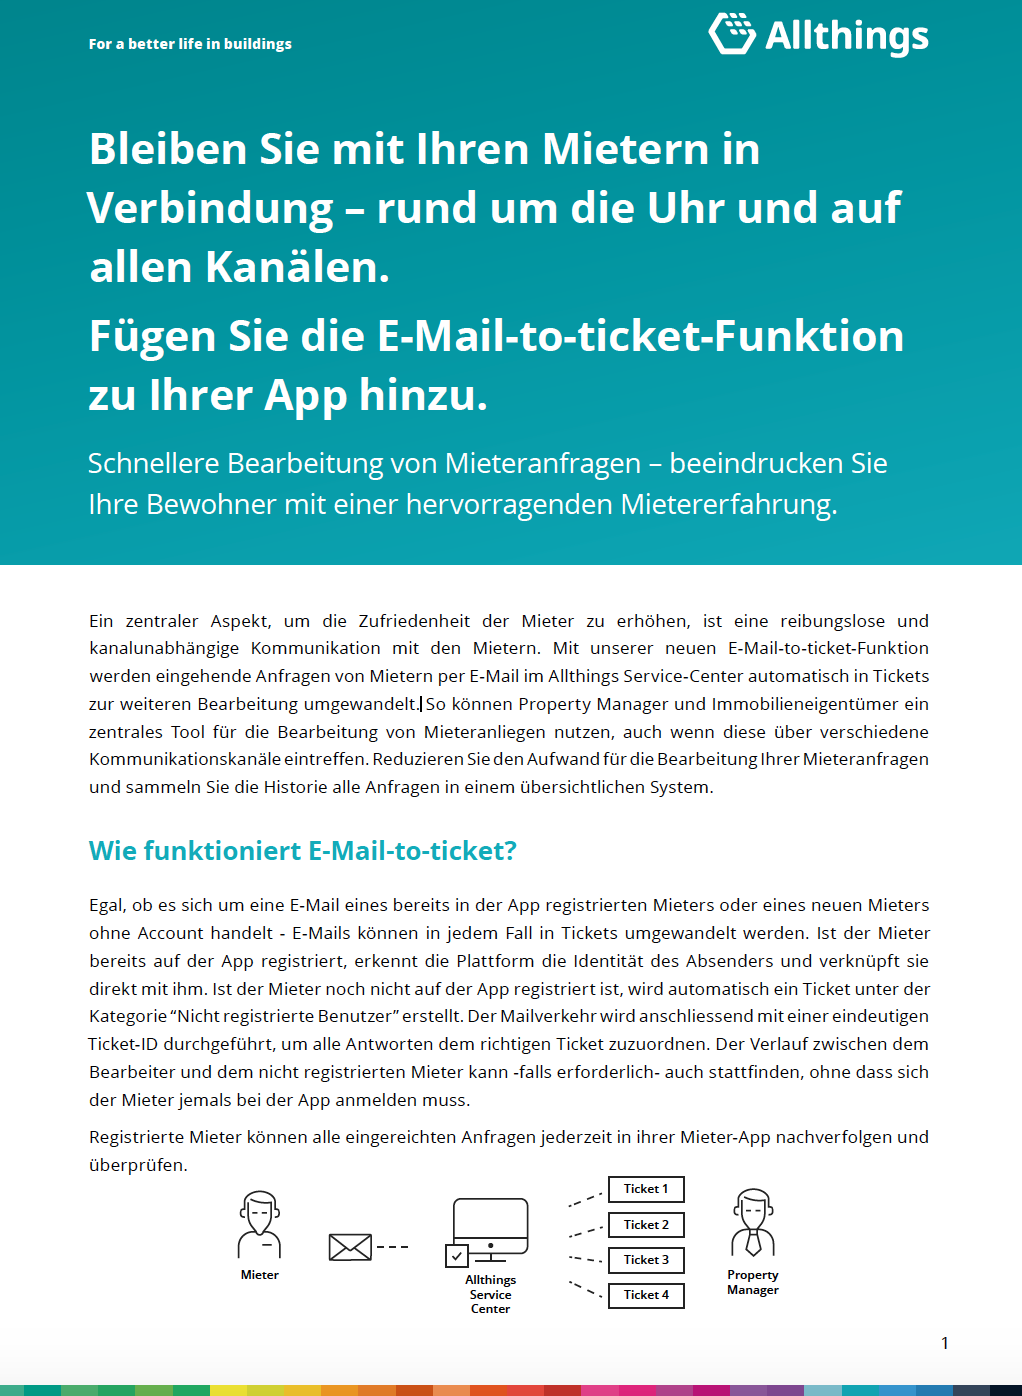 E-Mail-to-Ticket